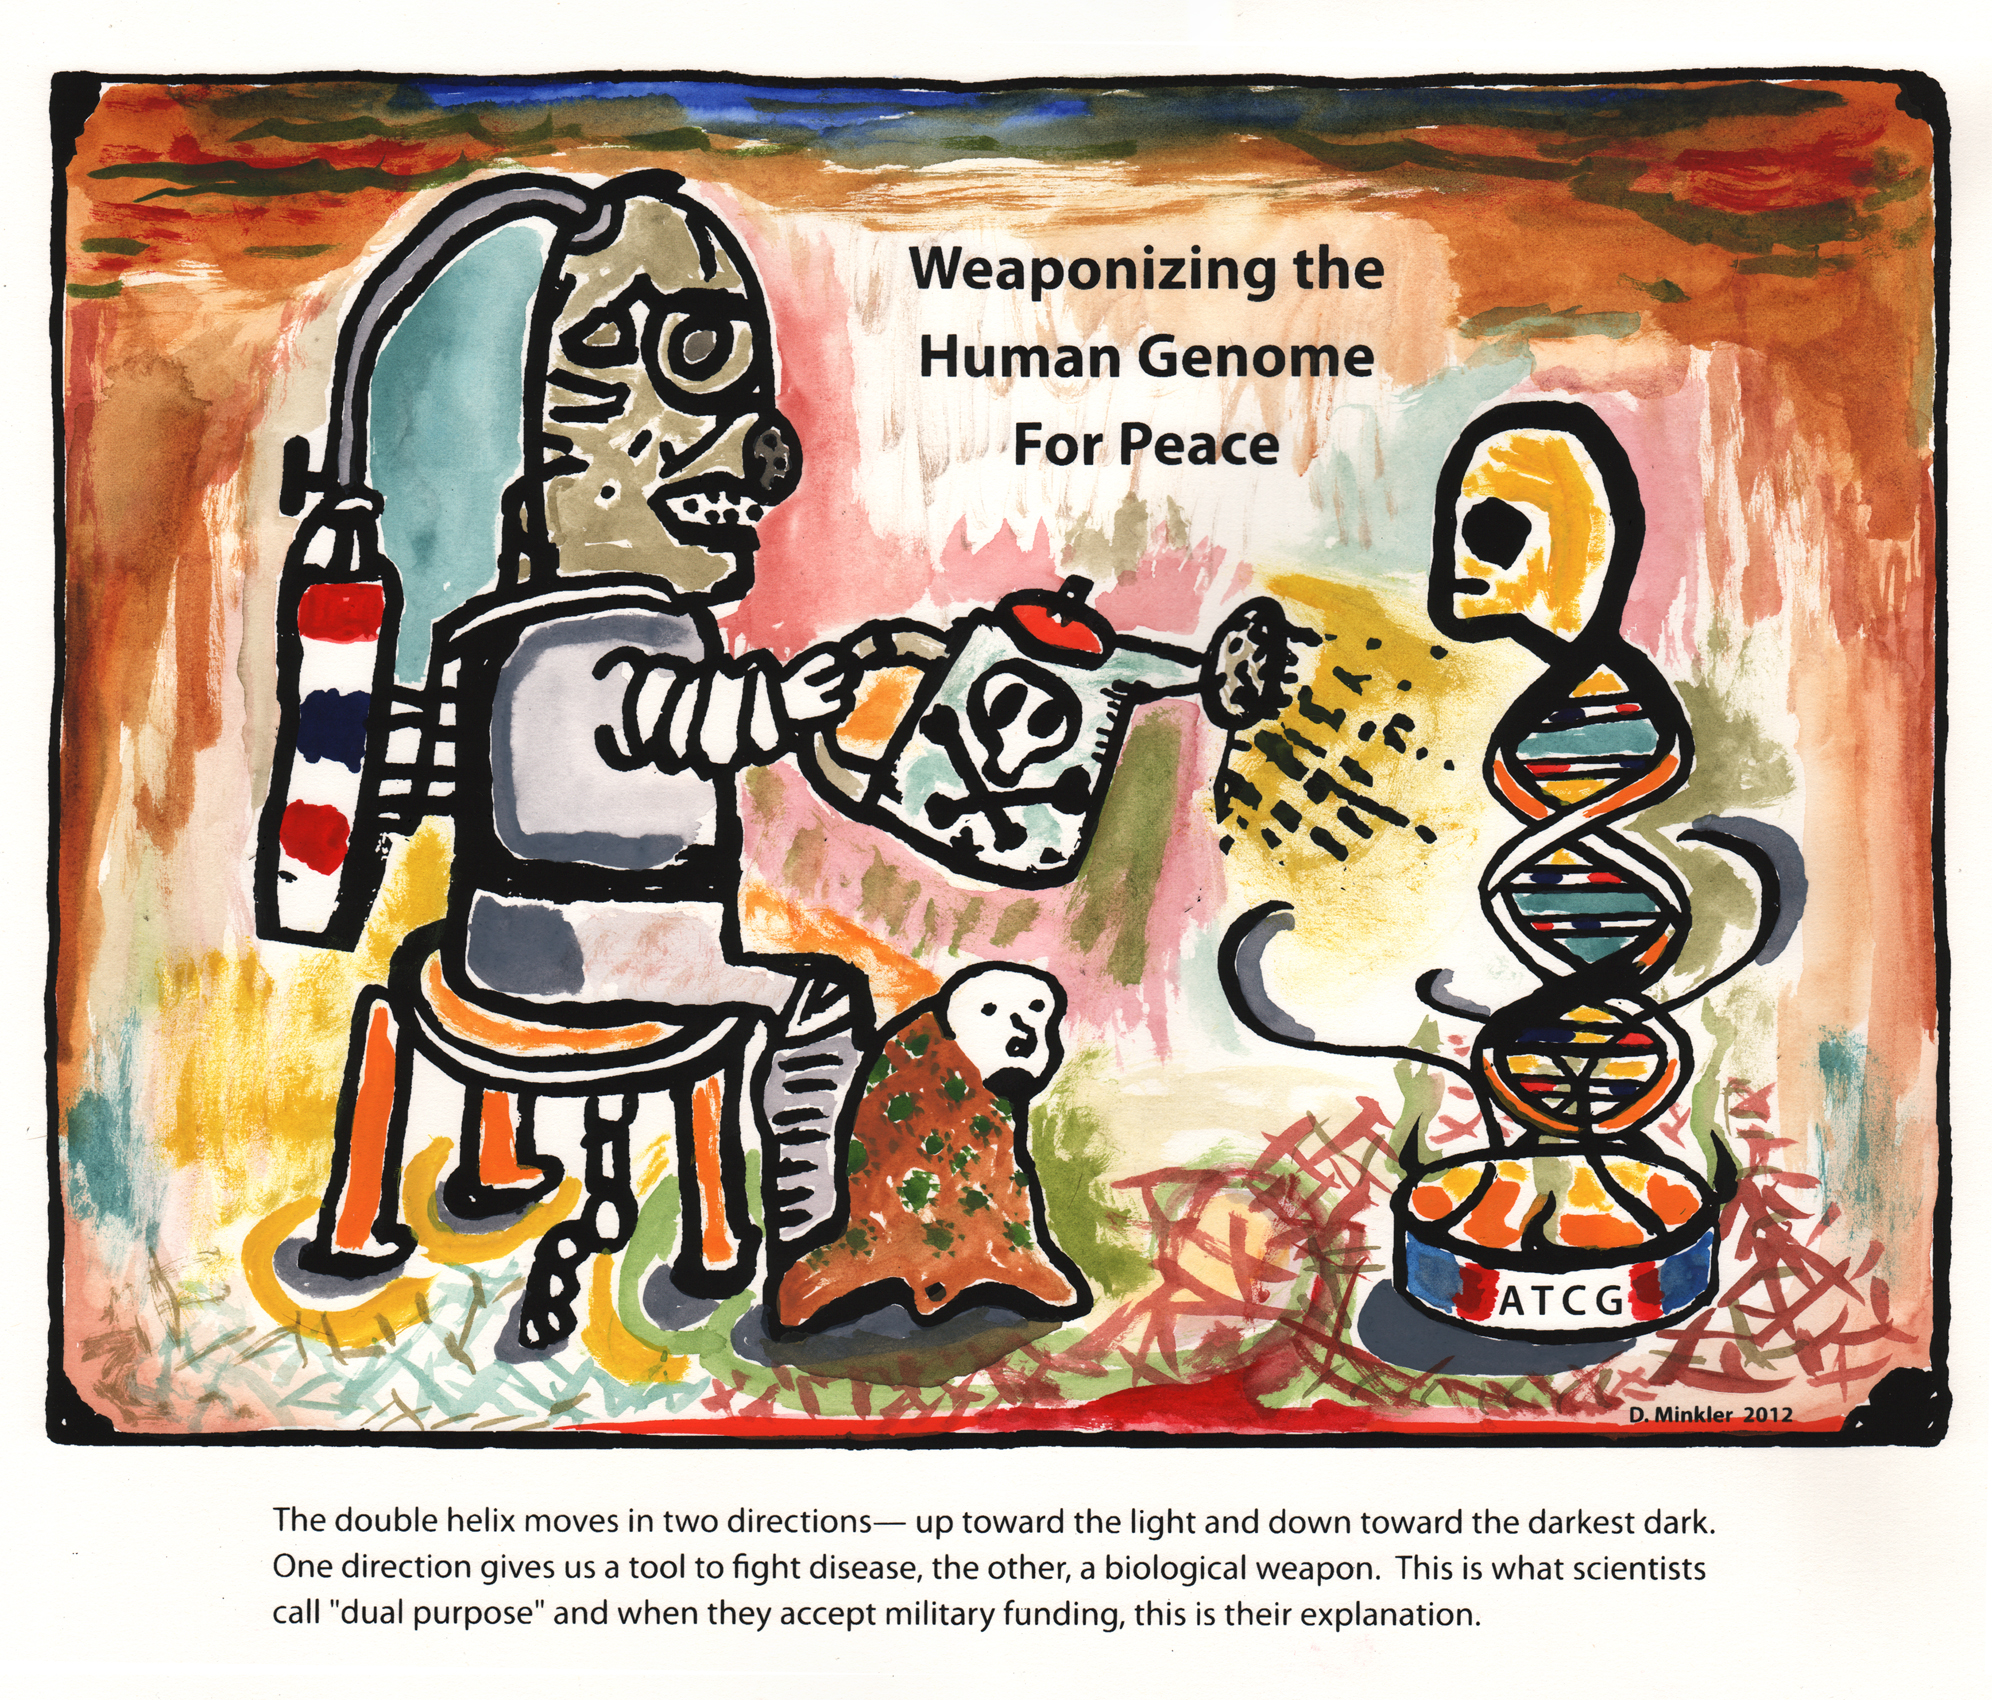 Weaponizing the Human Genome